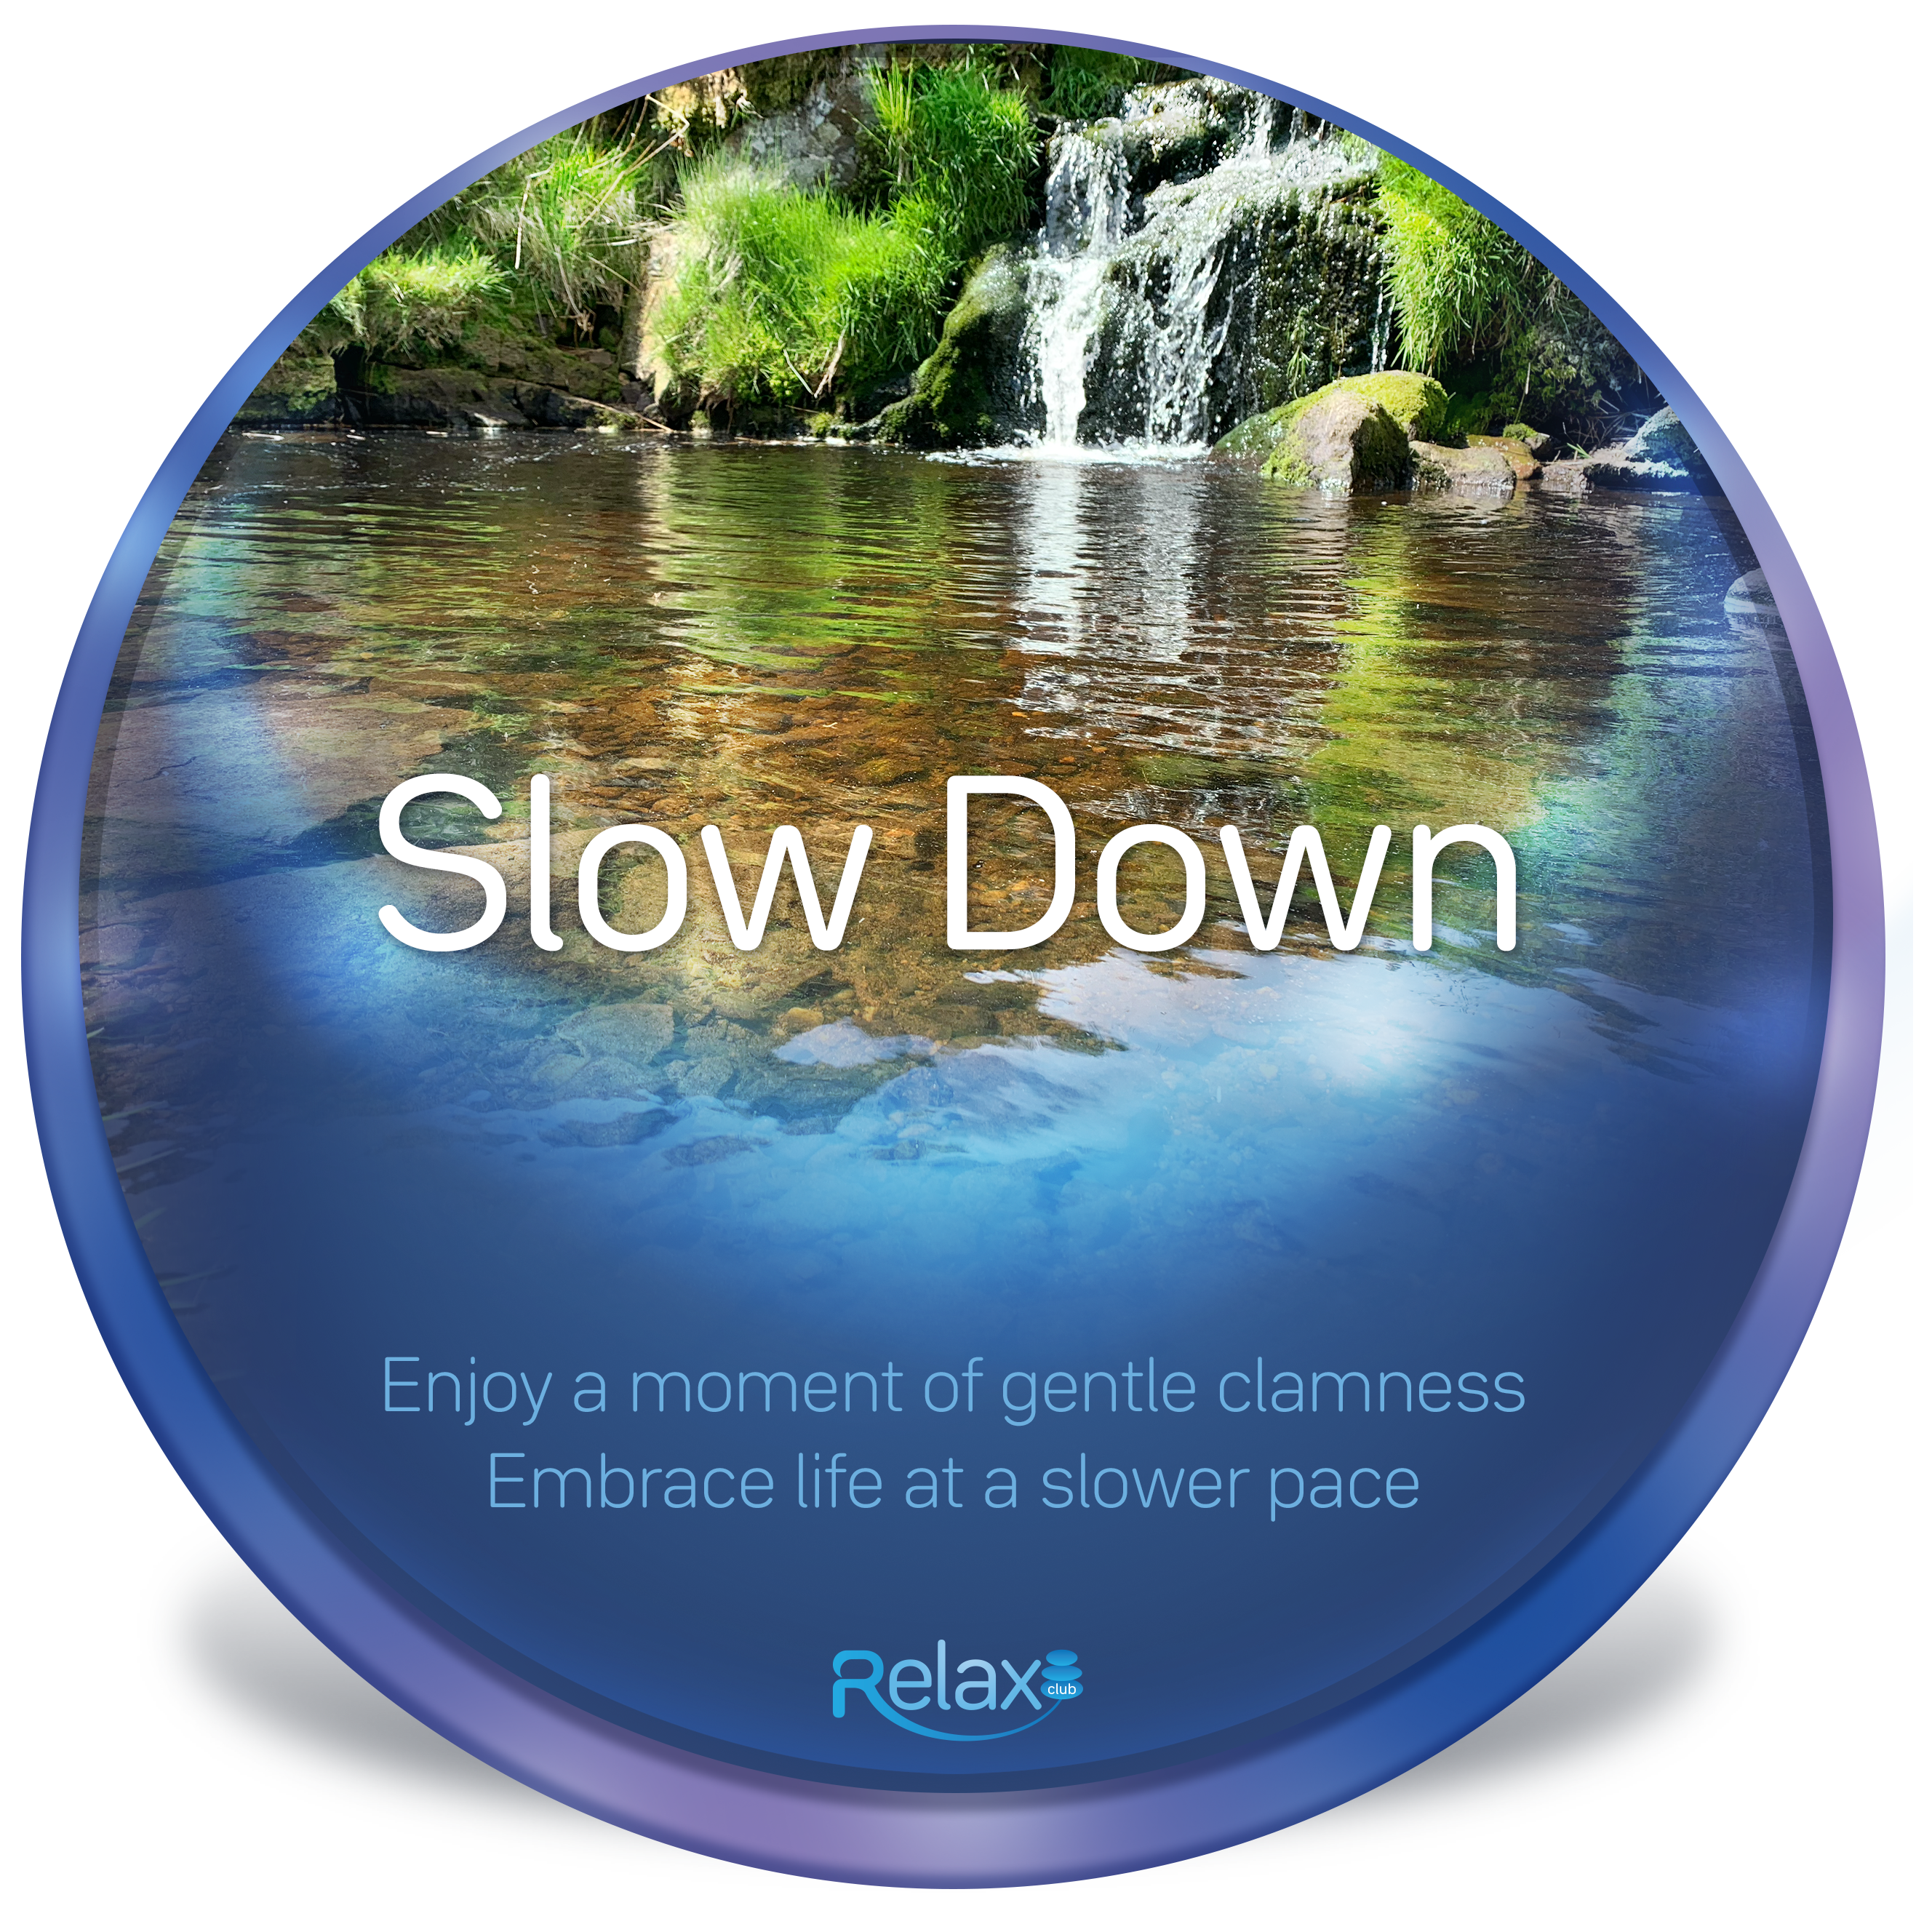 Slow down cover art